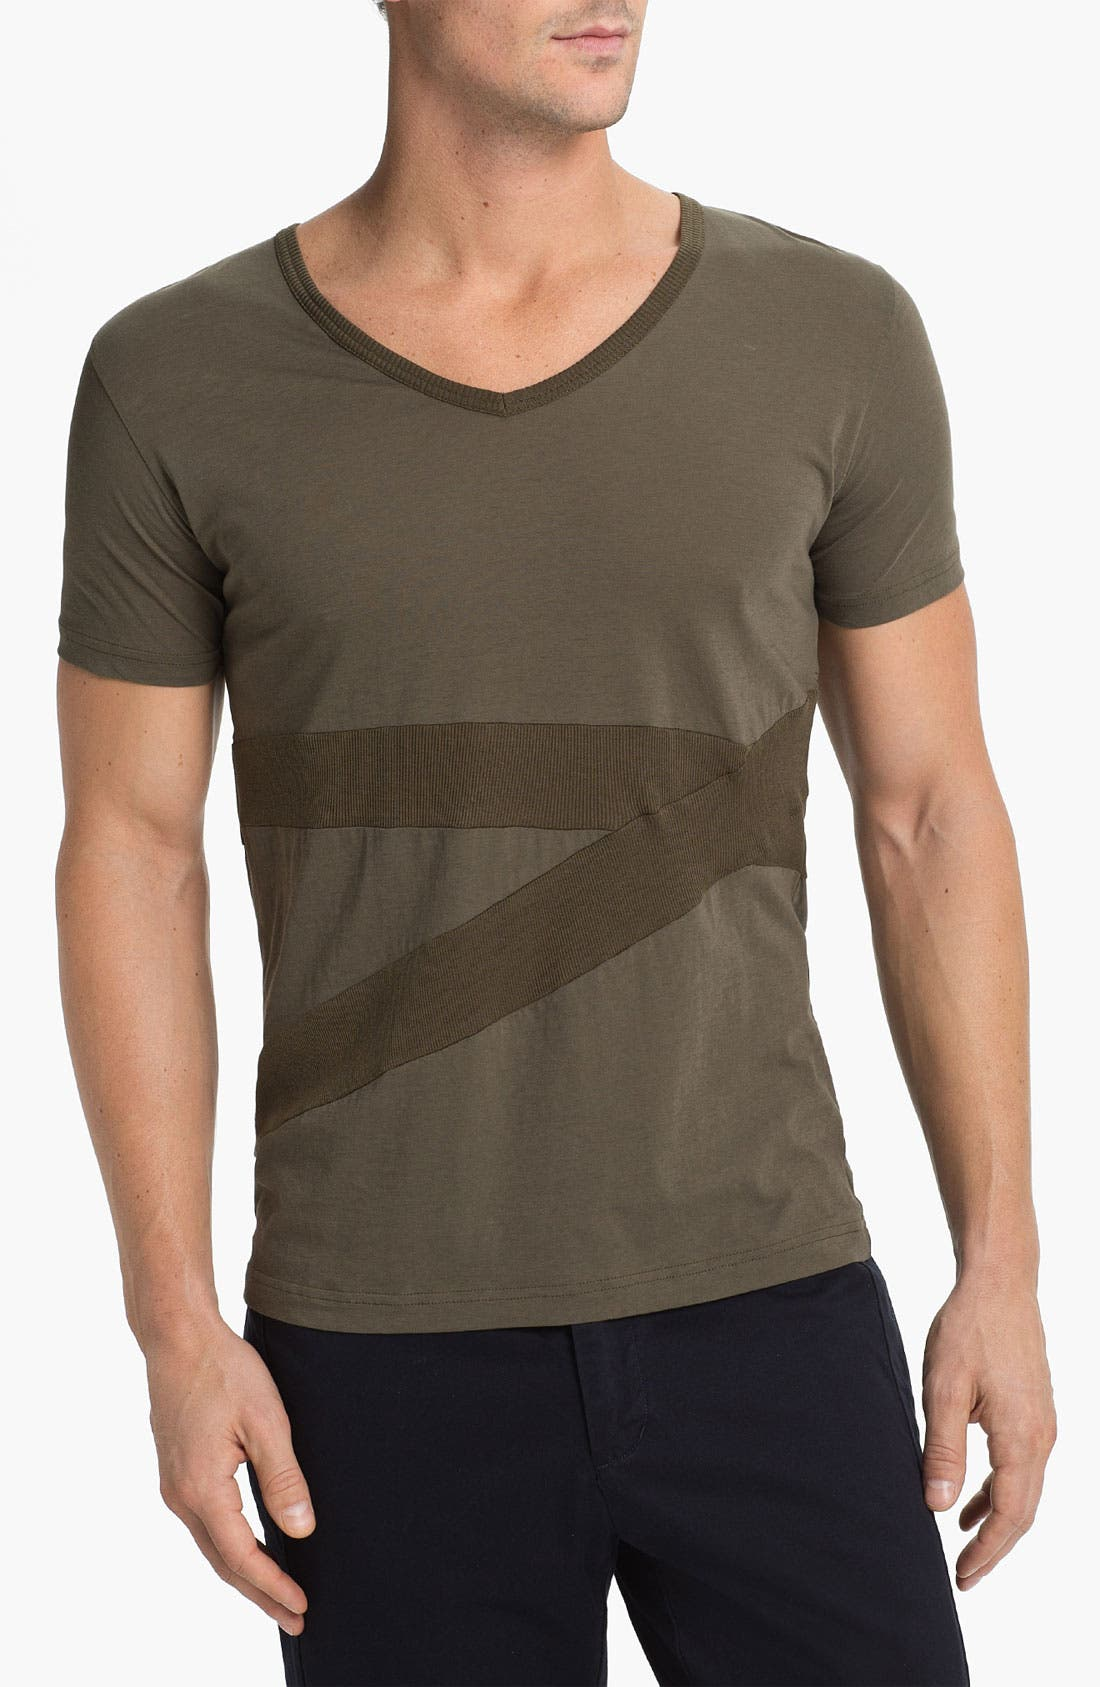 Alternate Image 1 Selected - adidas SLVR V-Neck T-Shirt